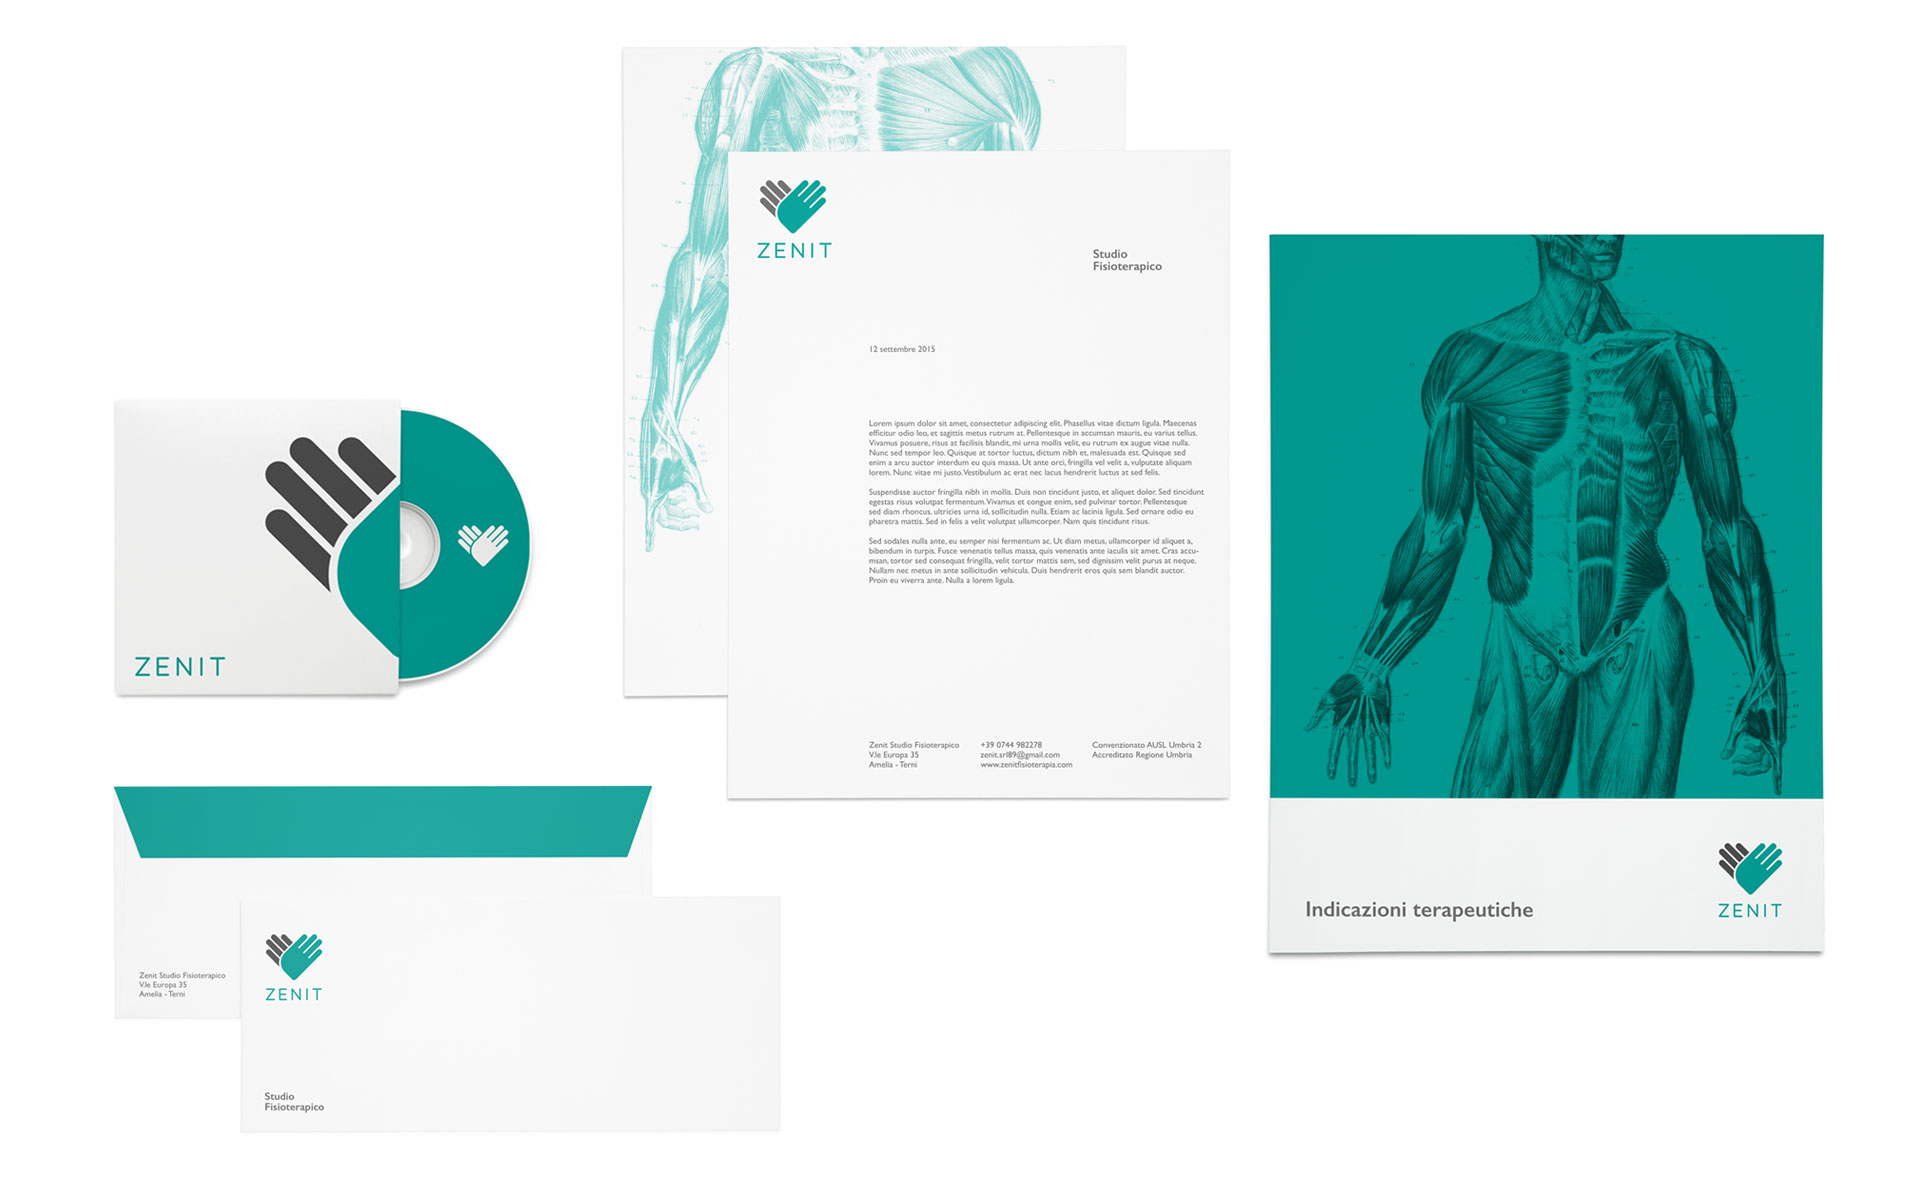 Zenit identity stationery design